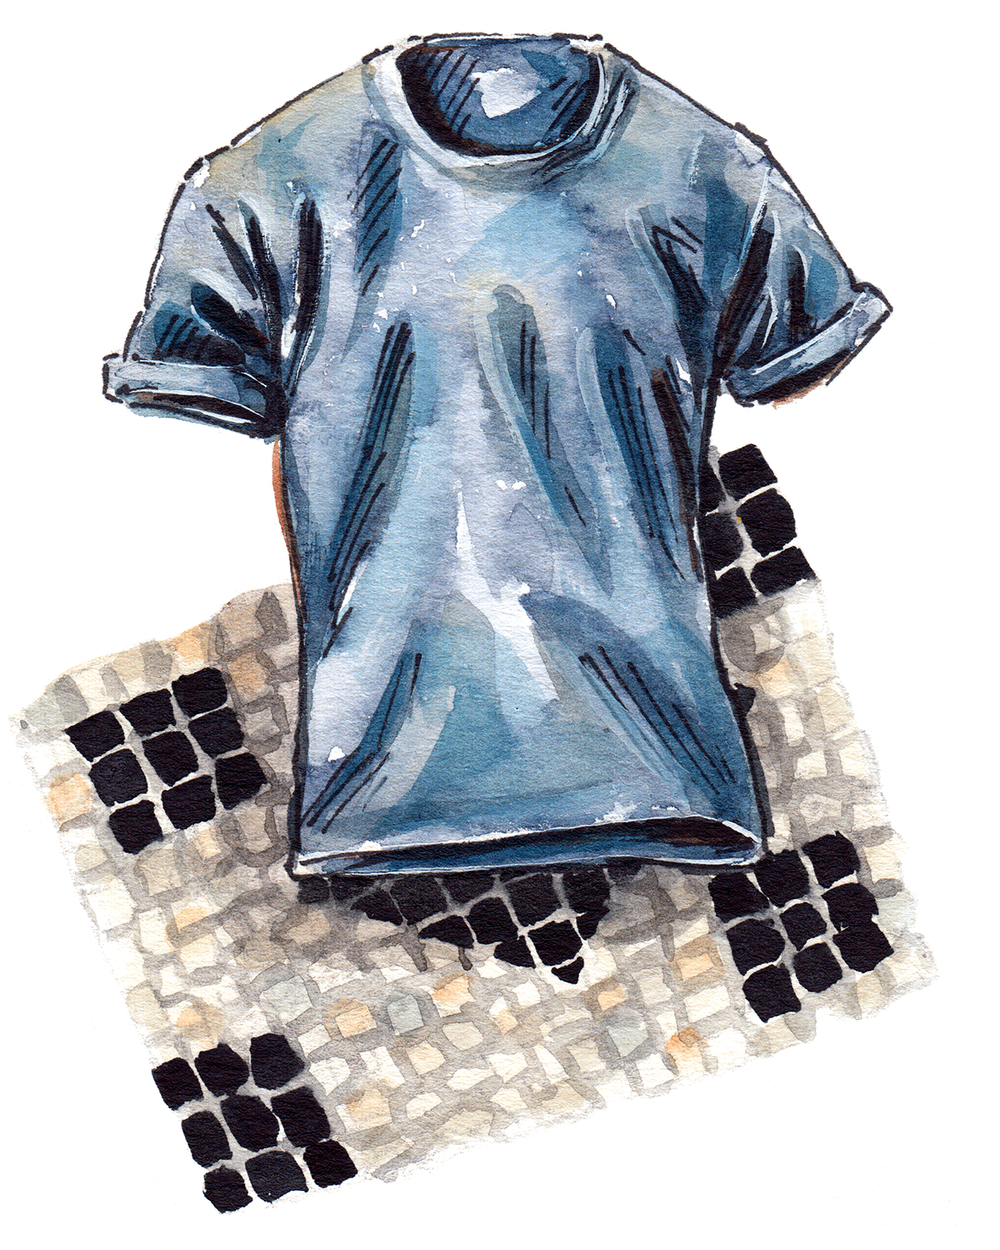 painting of a Brunello Cucinelli tee shirt, with a mosaic background